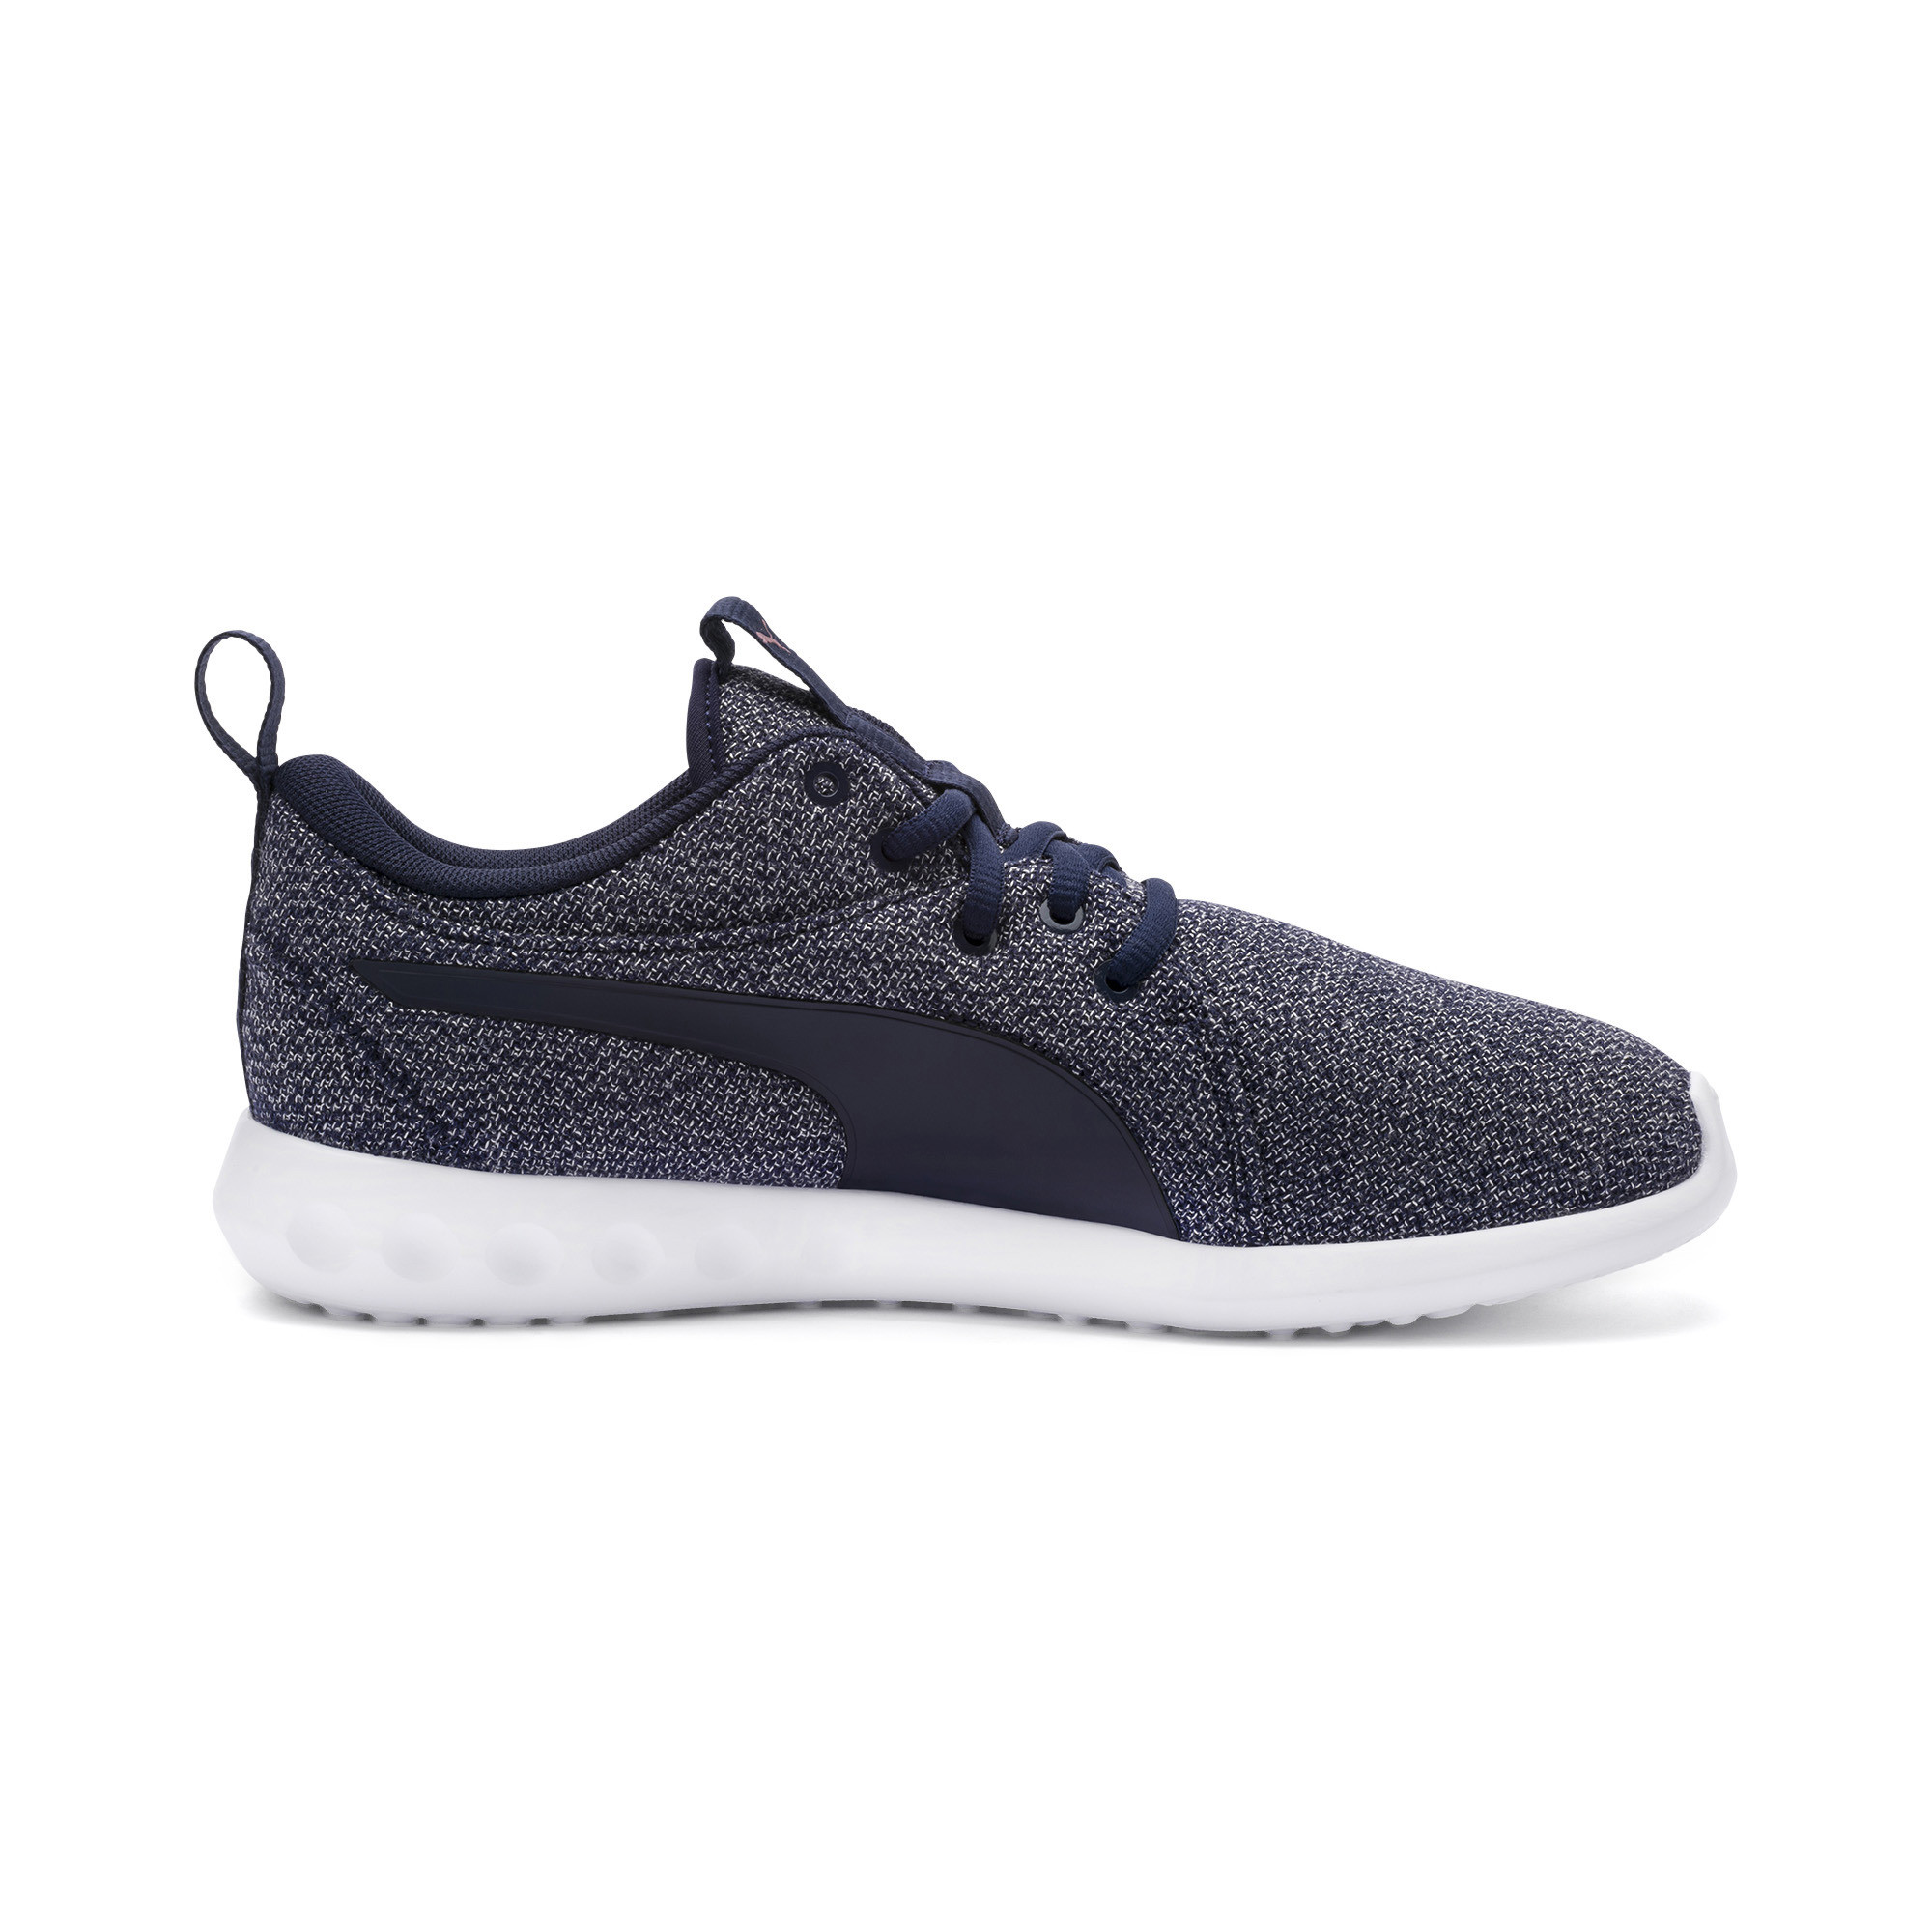 PUMA-Women-039-s-Carson-2-Knit-Running-Shoes thumbnail 31